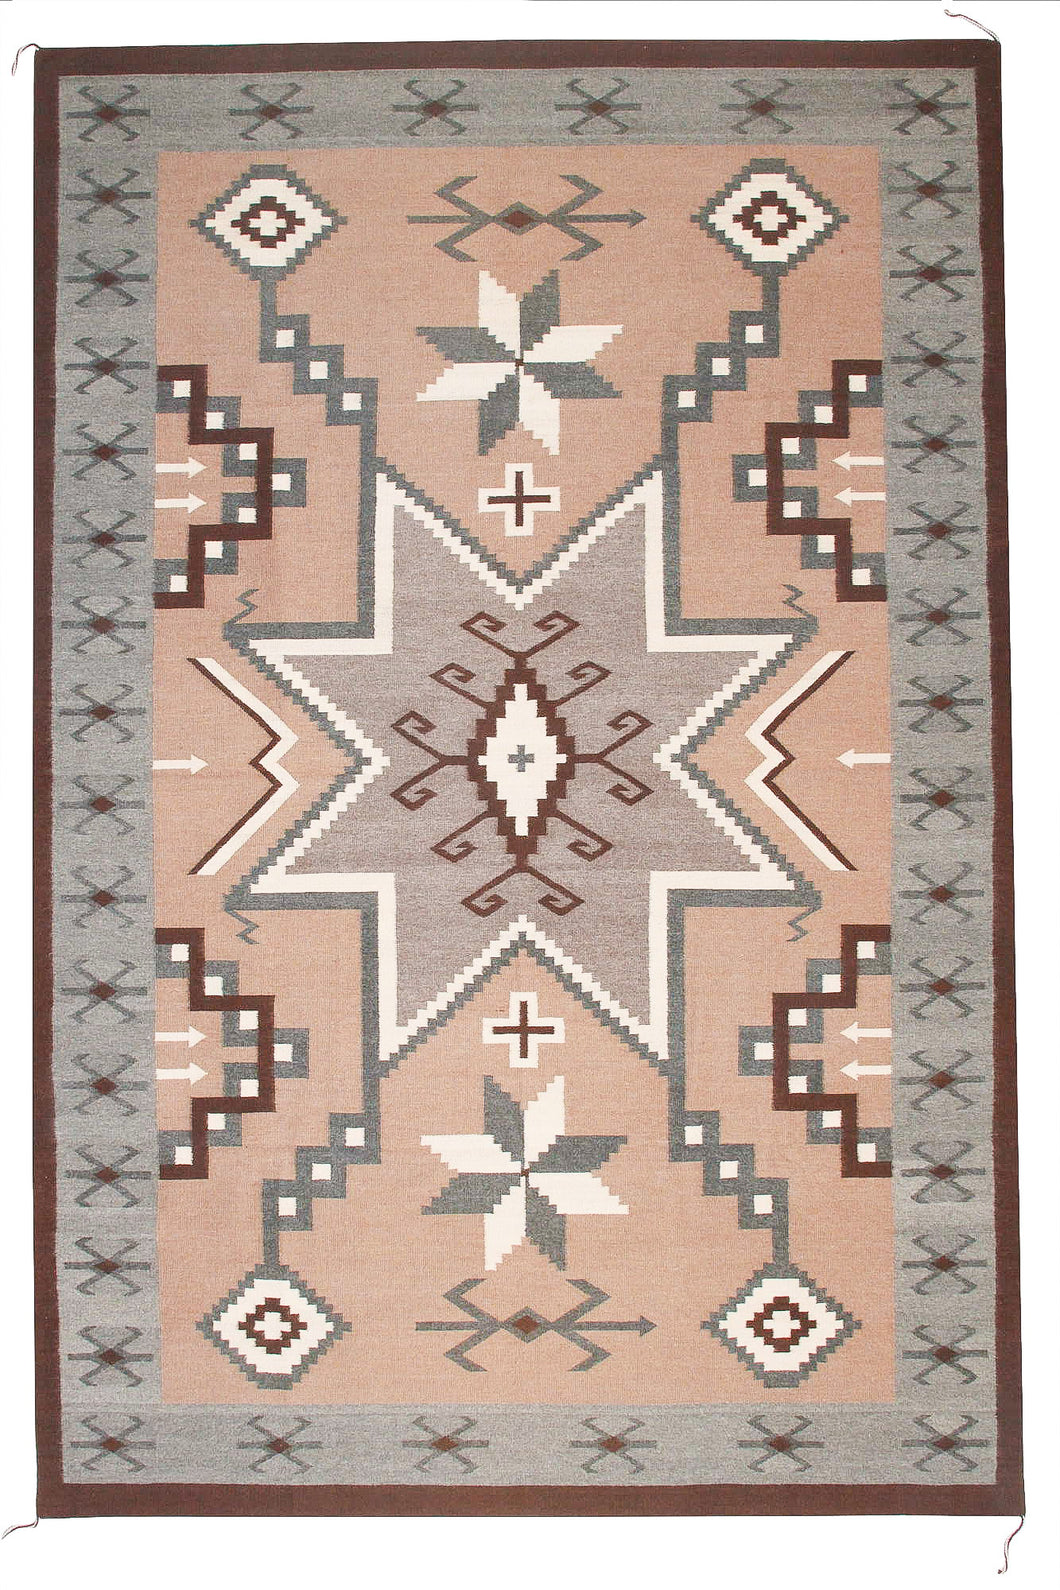 Handwoven Zapotec Indian Rug - Storm of Stars Wool Oaxacan Textile